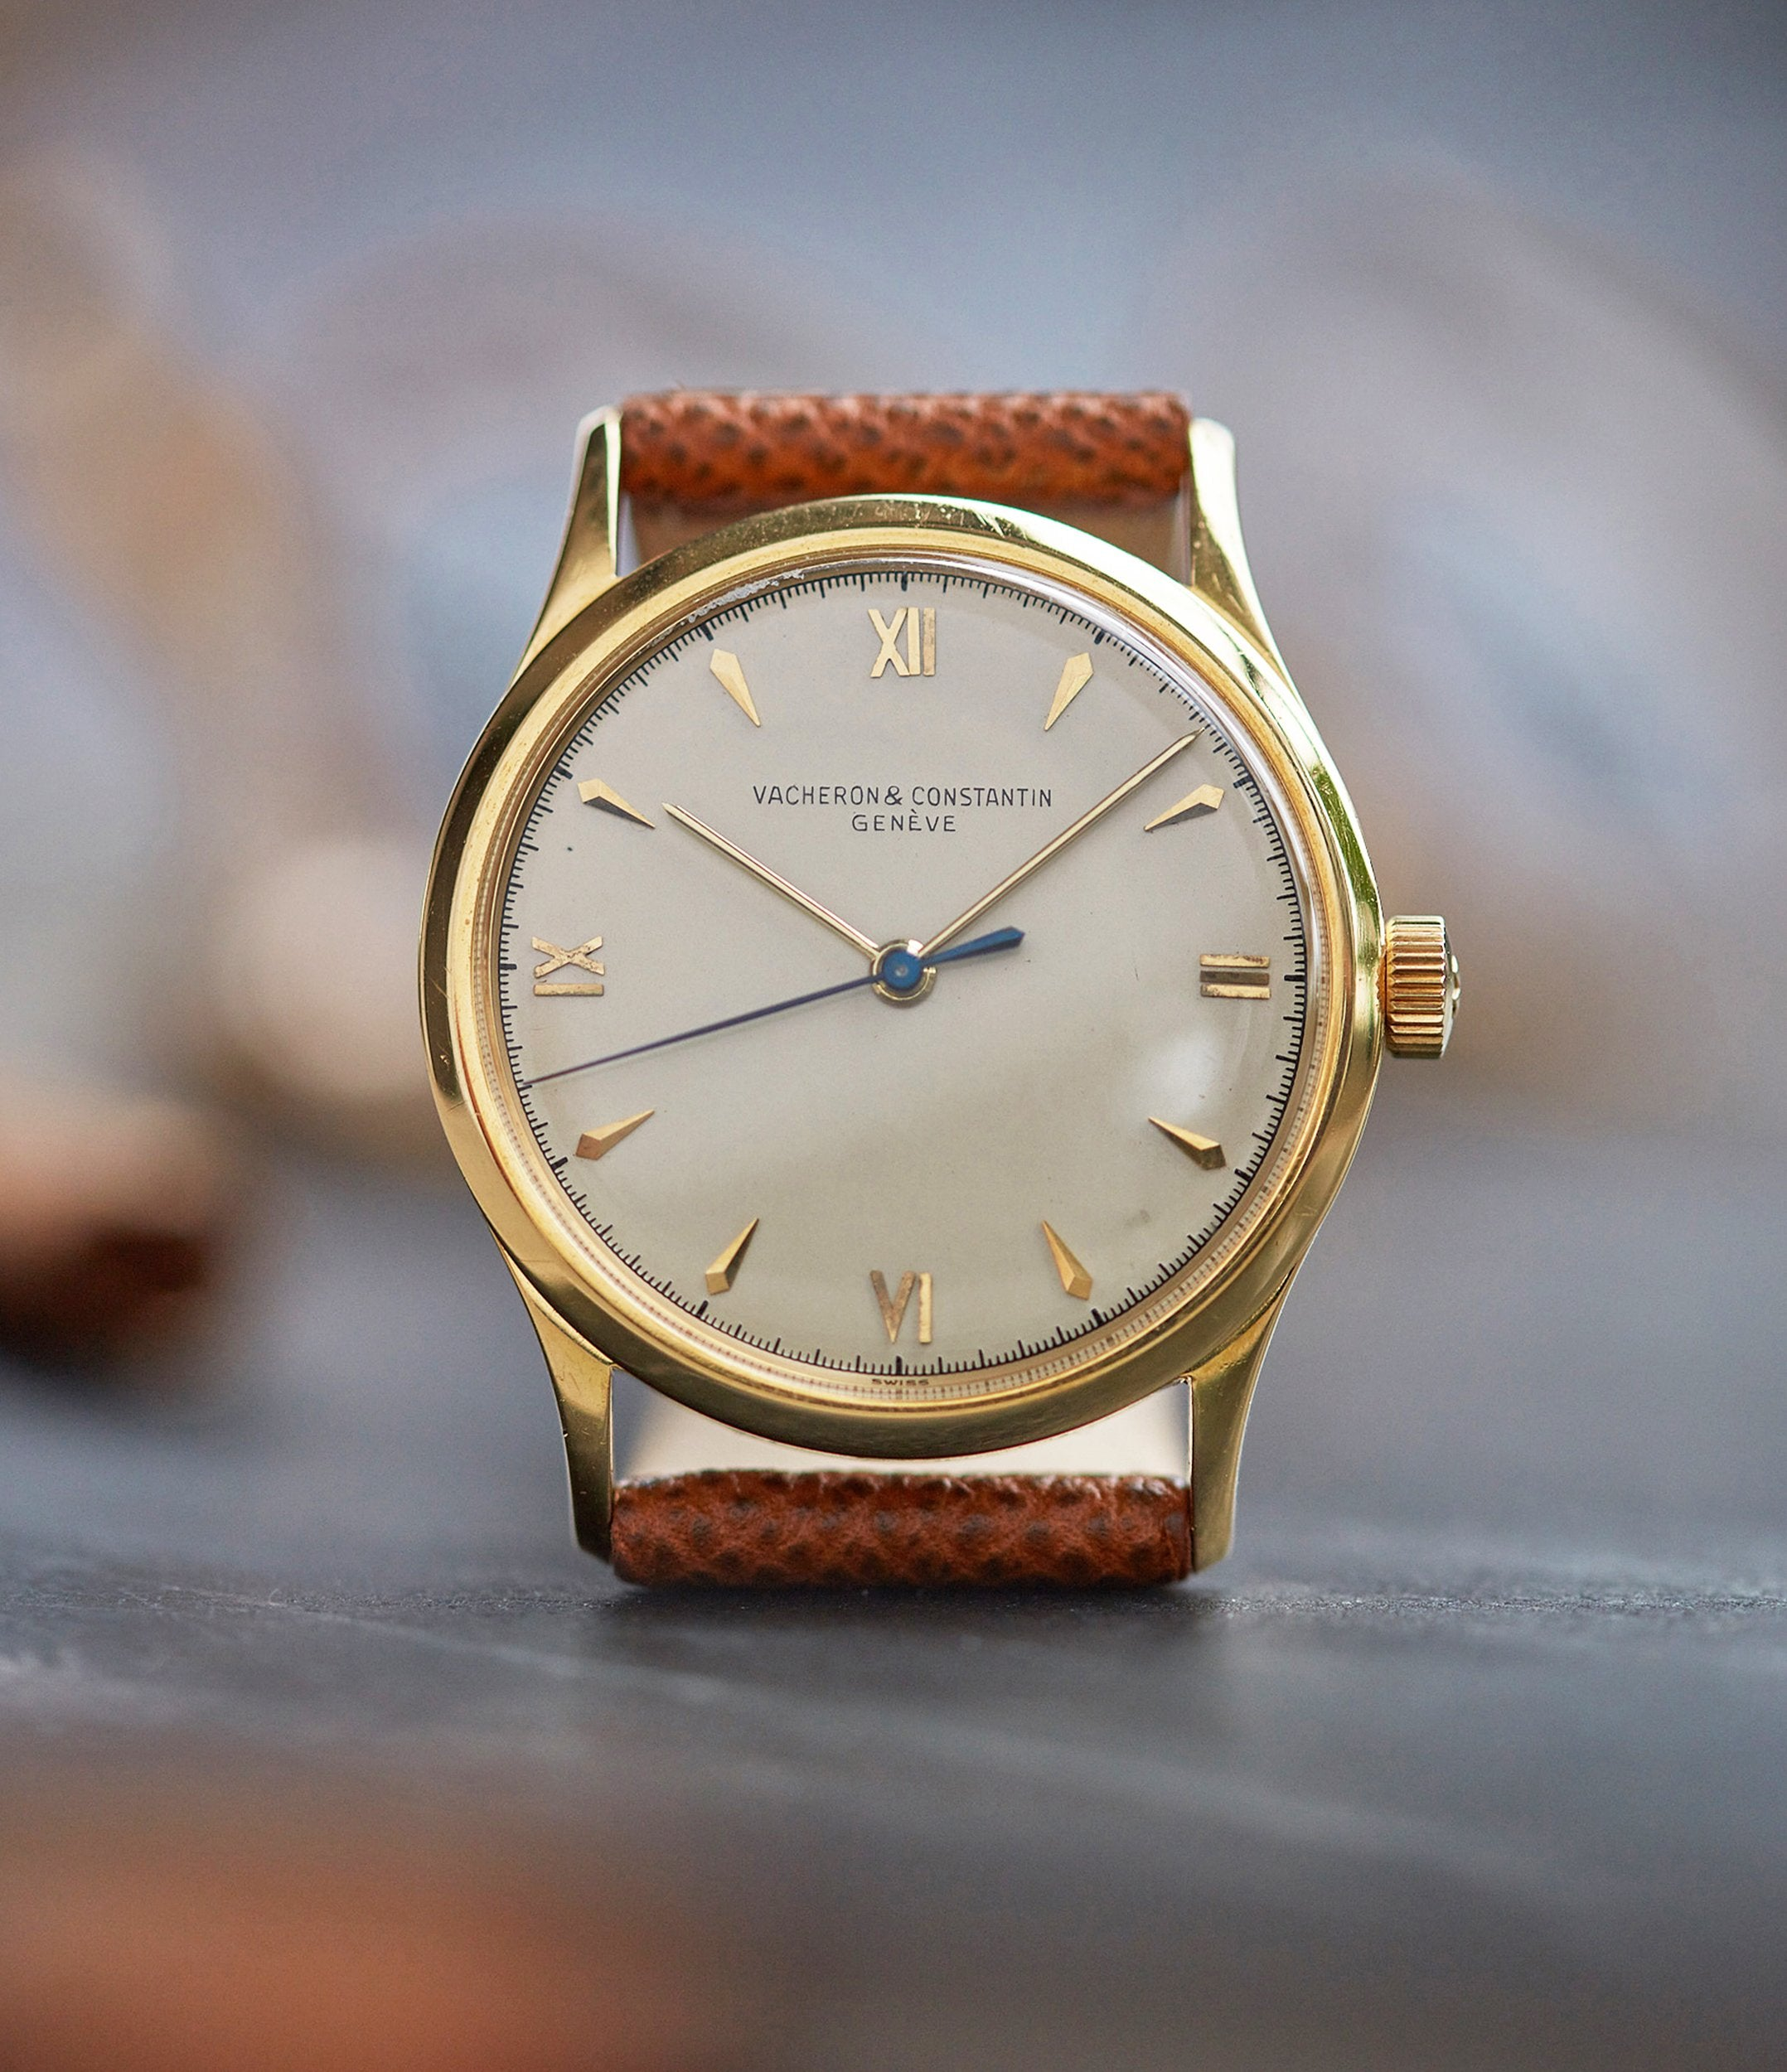 Vacheron Constantin Ref. 4127 vintage time-only yellow gold dress watch for sale online A Collected Man London UK specialist rare watches